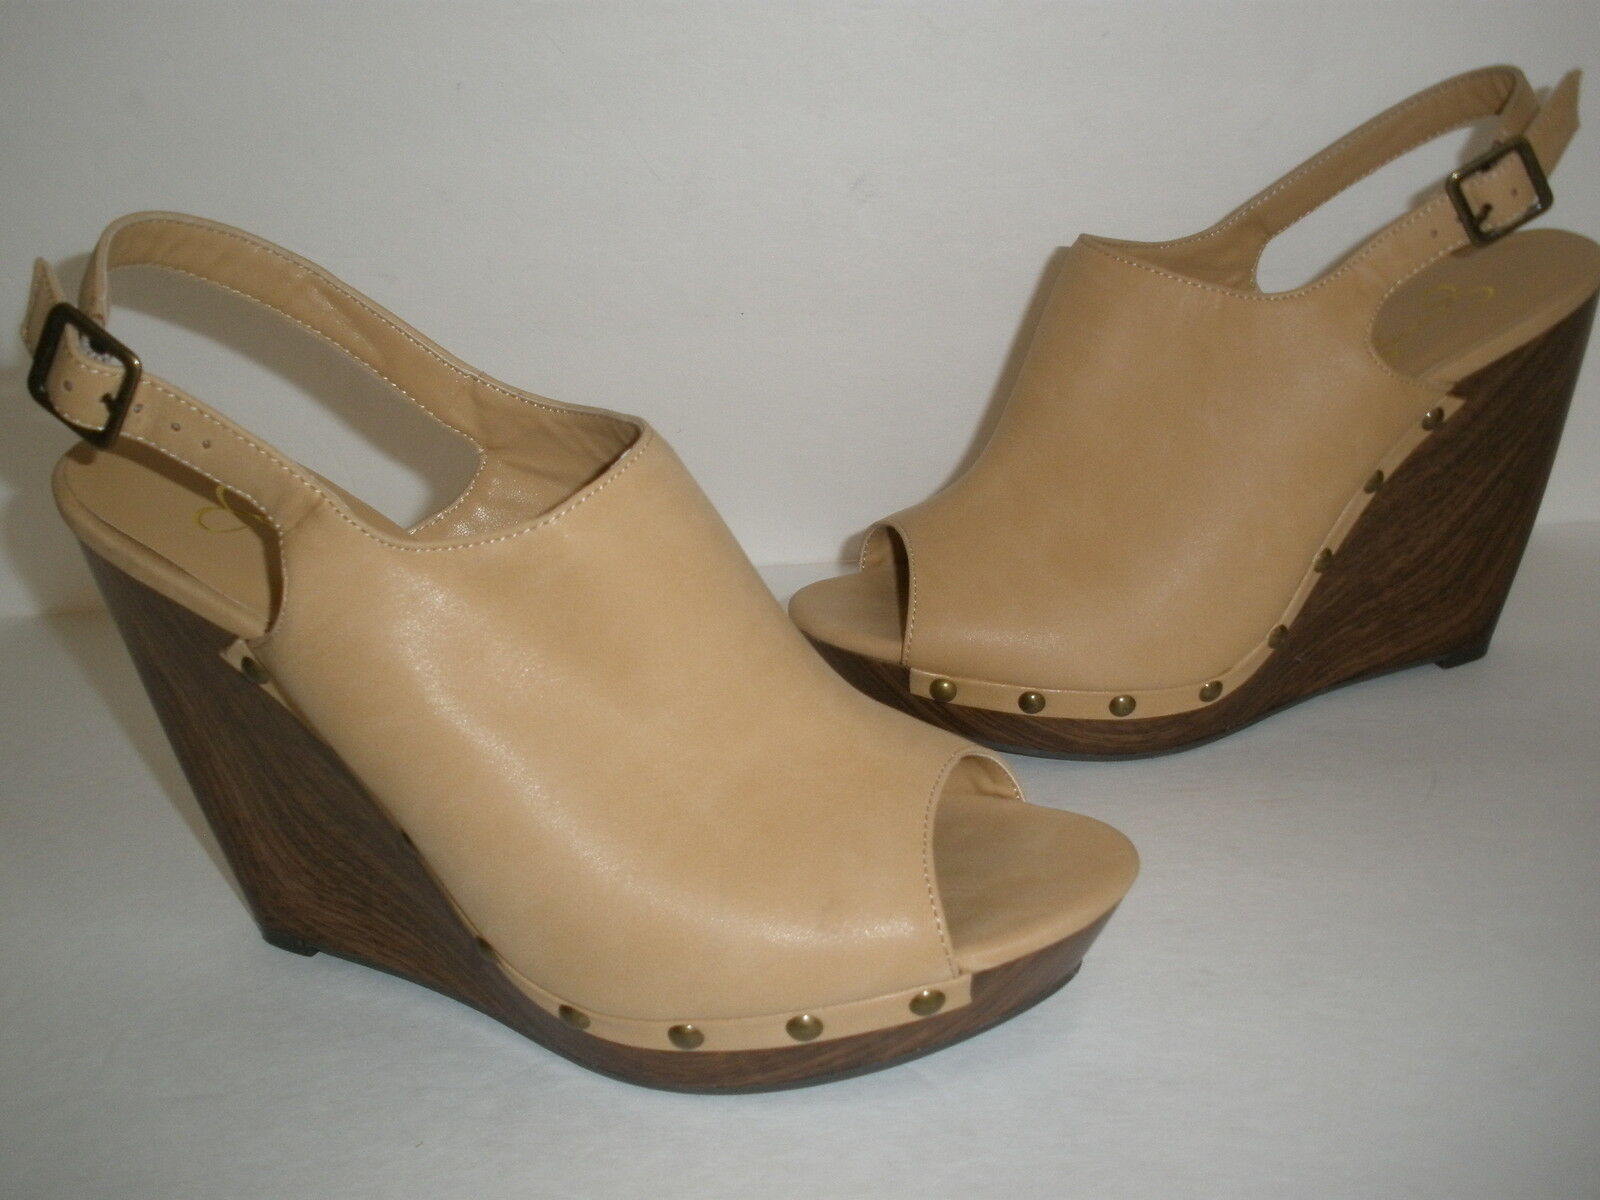 JESSICA SIMPSON SEXY Wedge size US 9 EUR 39 NEW HOT RARE